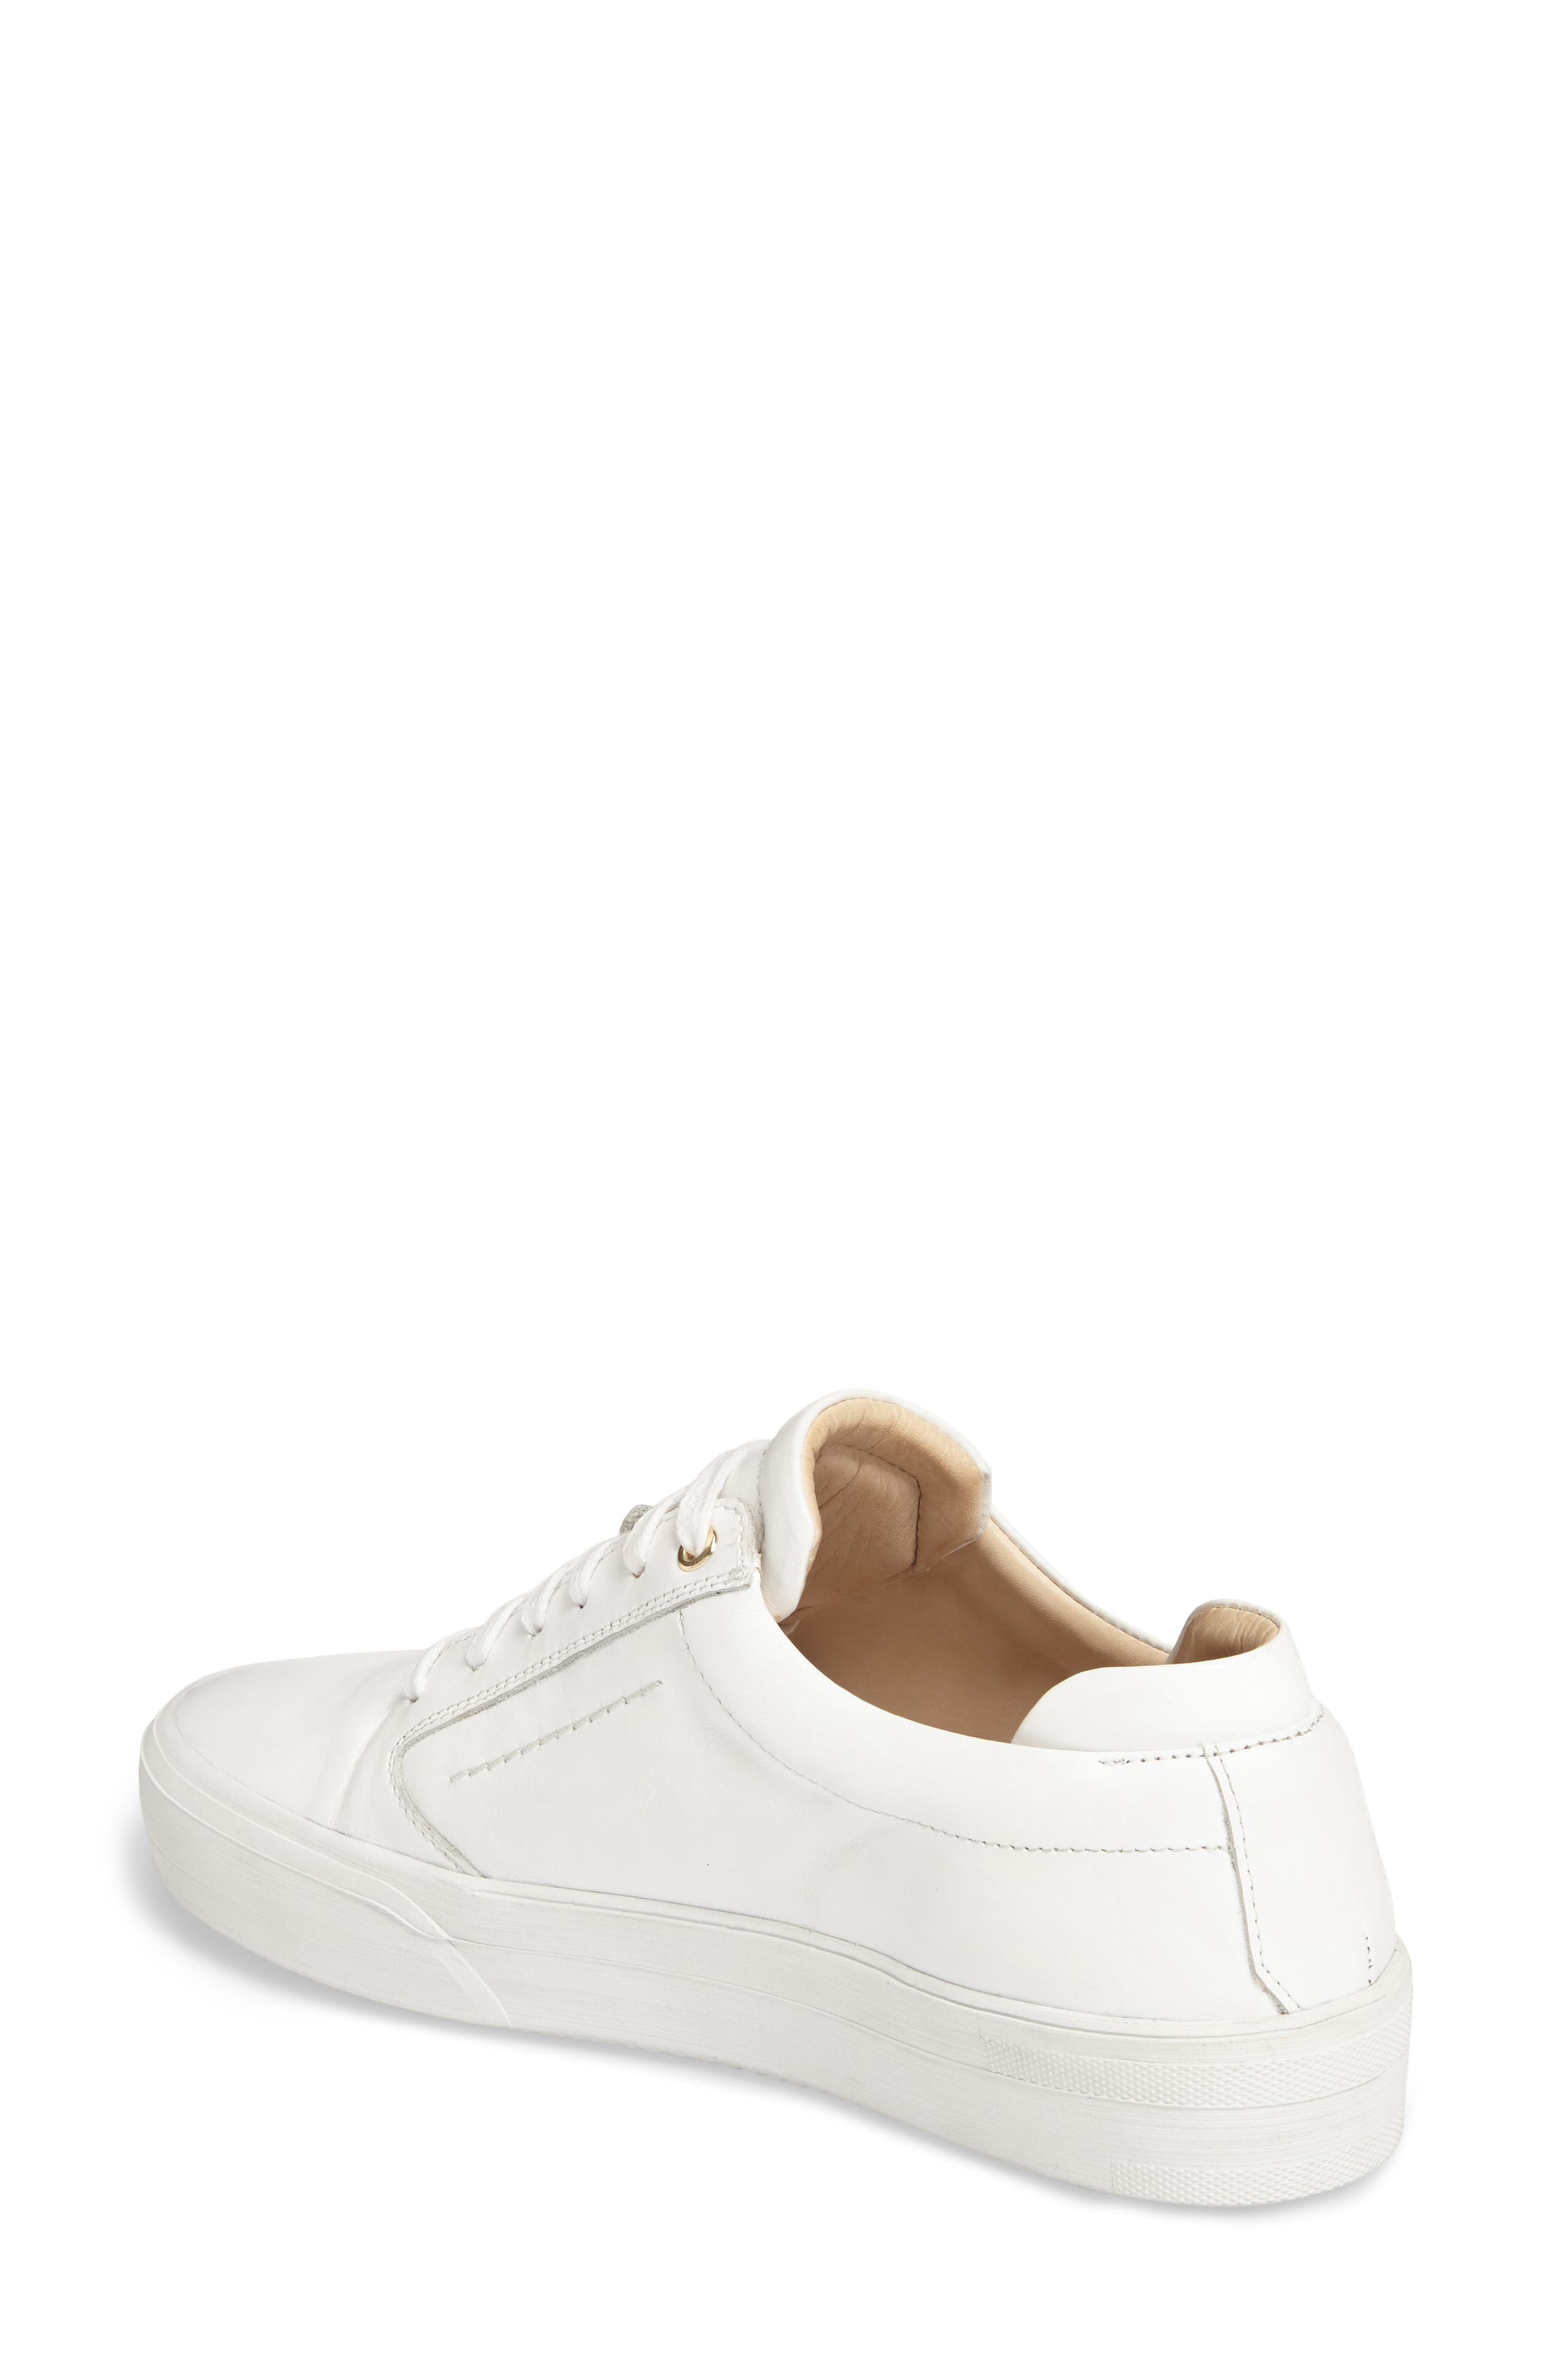 Lalibela Sneaker,                             Alternate thumbnail 2, color,                             WHITE/PATENT WHITE